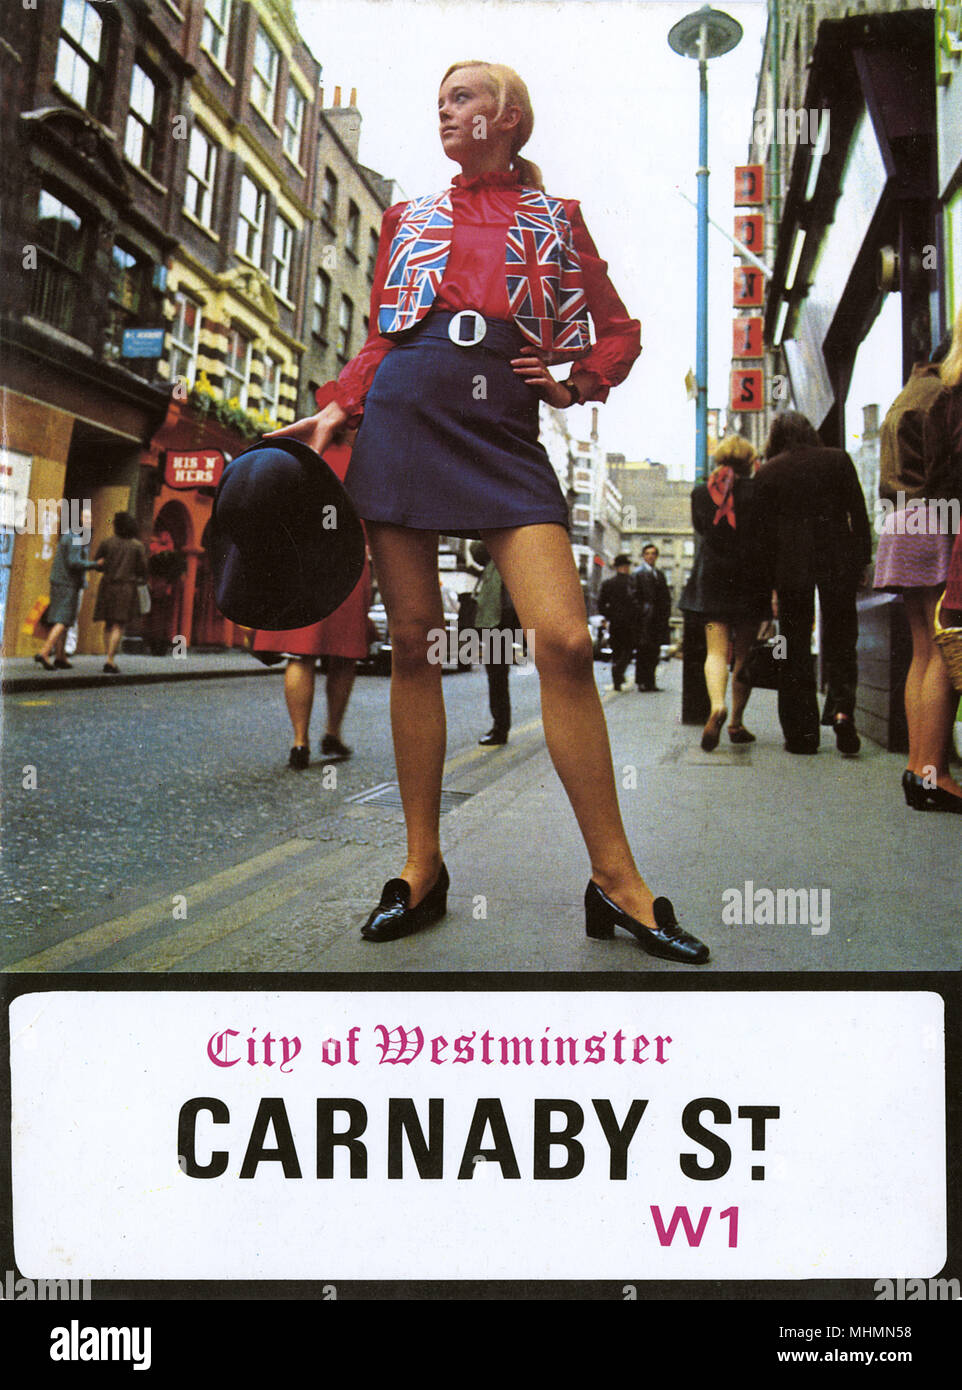 Front cover of a promotional booklet about fashion epicentre of the 1960s, Carnaby Street, London.  A model poses in front of the street's various boutiques wearing a Union Jack waistcoat and mini skirt.     Date: 1966 - Stock Image